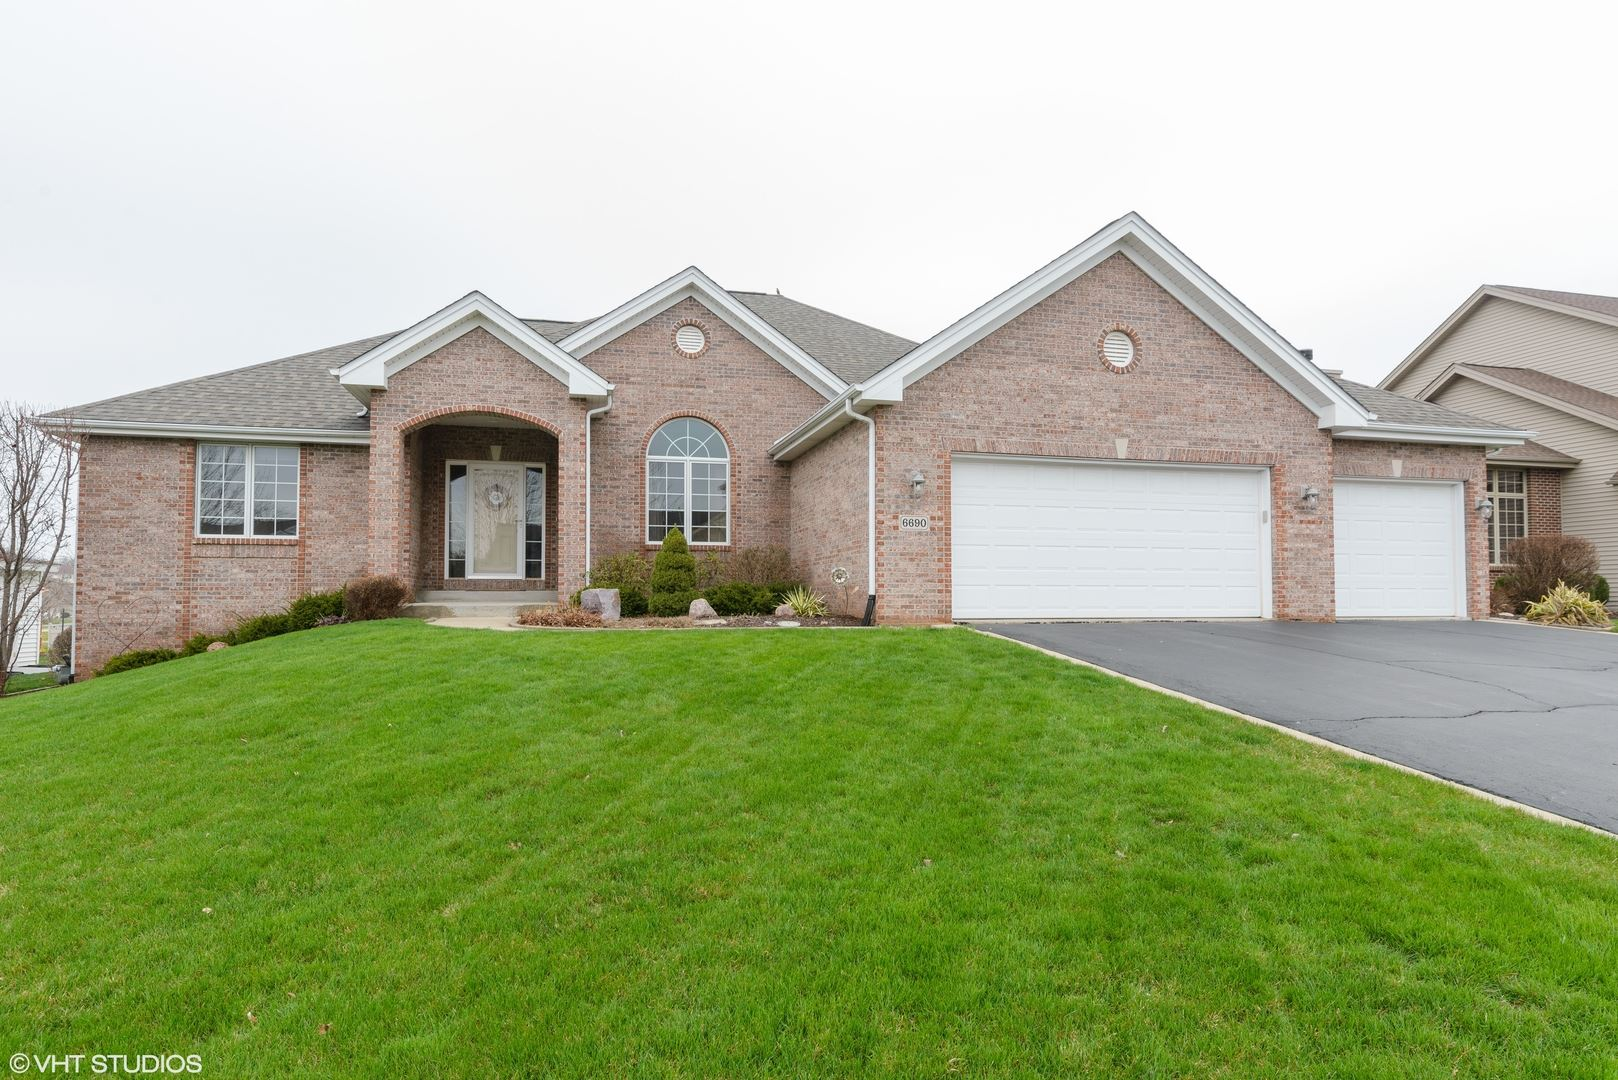 6690 Butterfield Drive, Cherry Valley, IL 61016 - #: 10686524